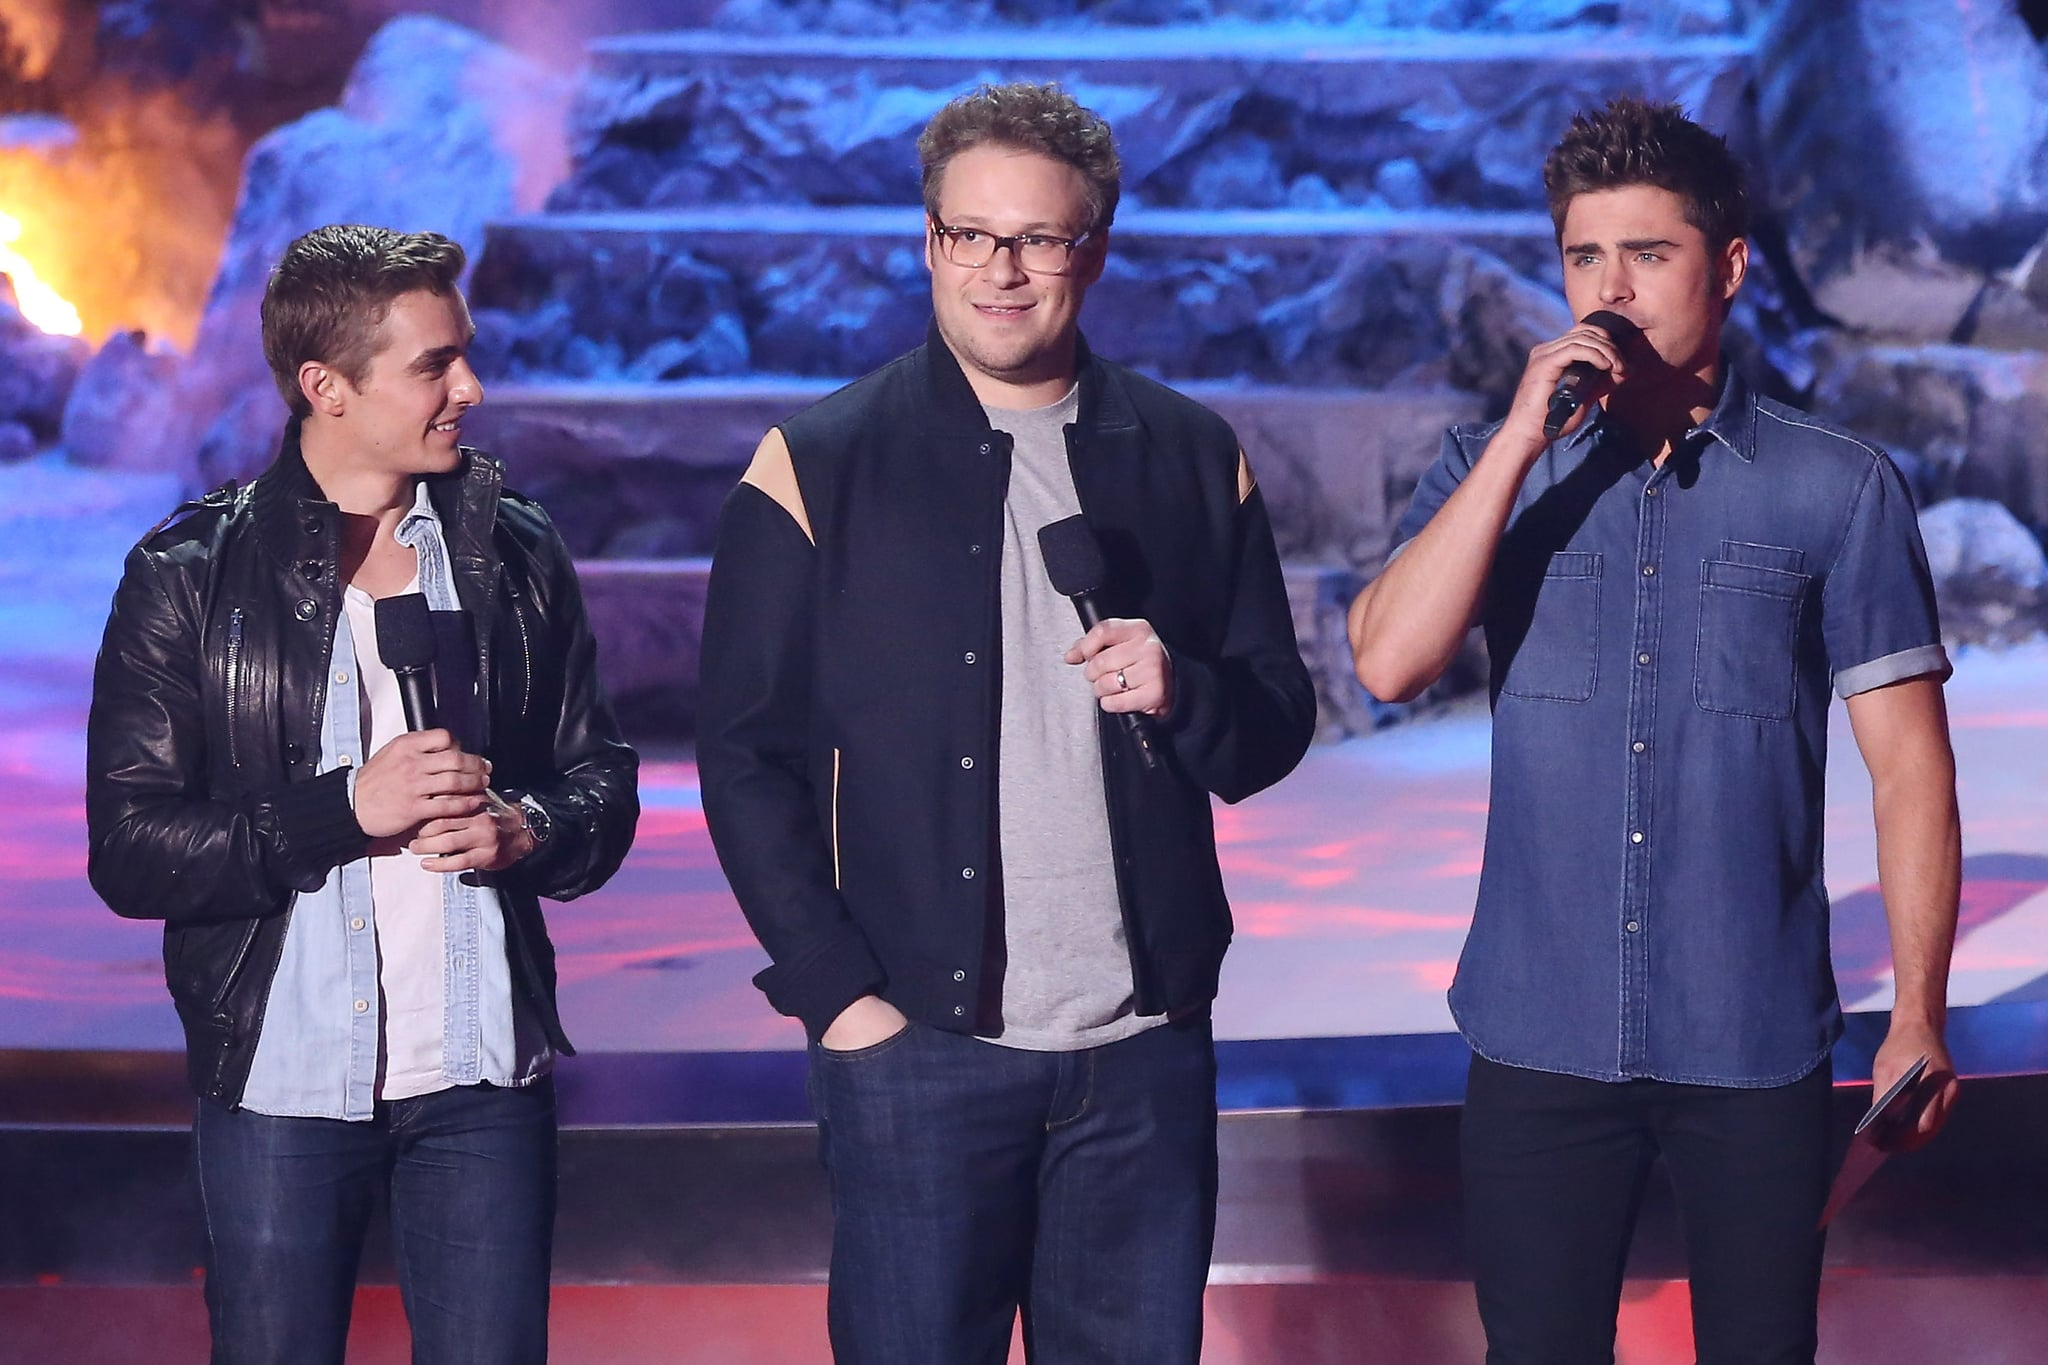 Dave Franco, Seth Rogen, and Zac Efron, stars of the upcoming comedy Neighbors, gathered on stage for a sketch.